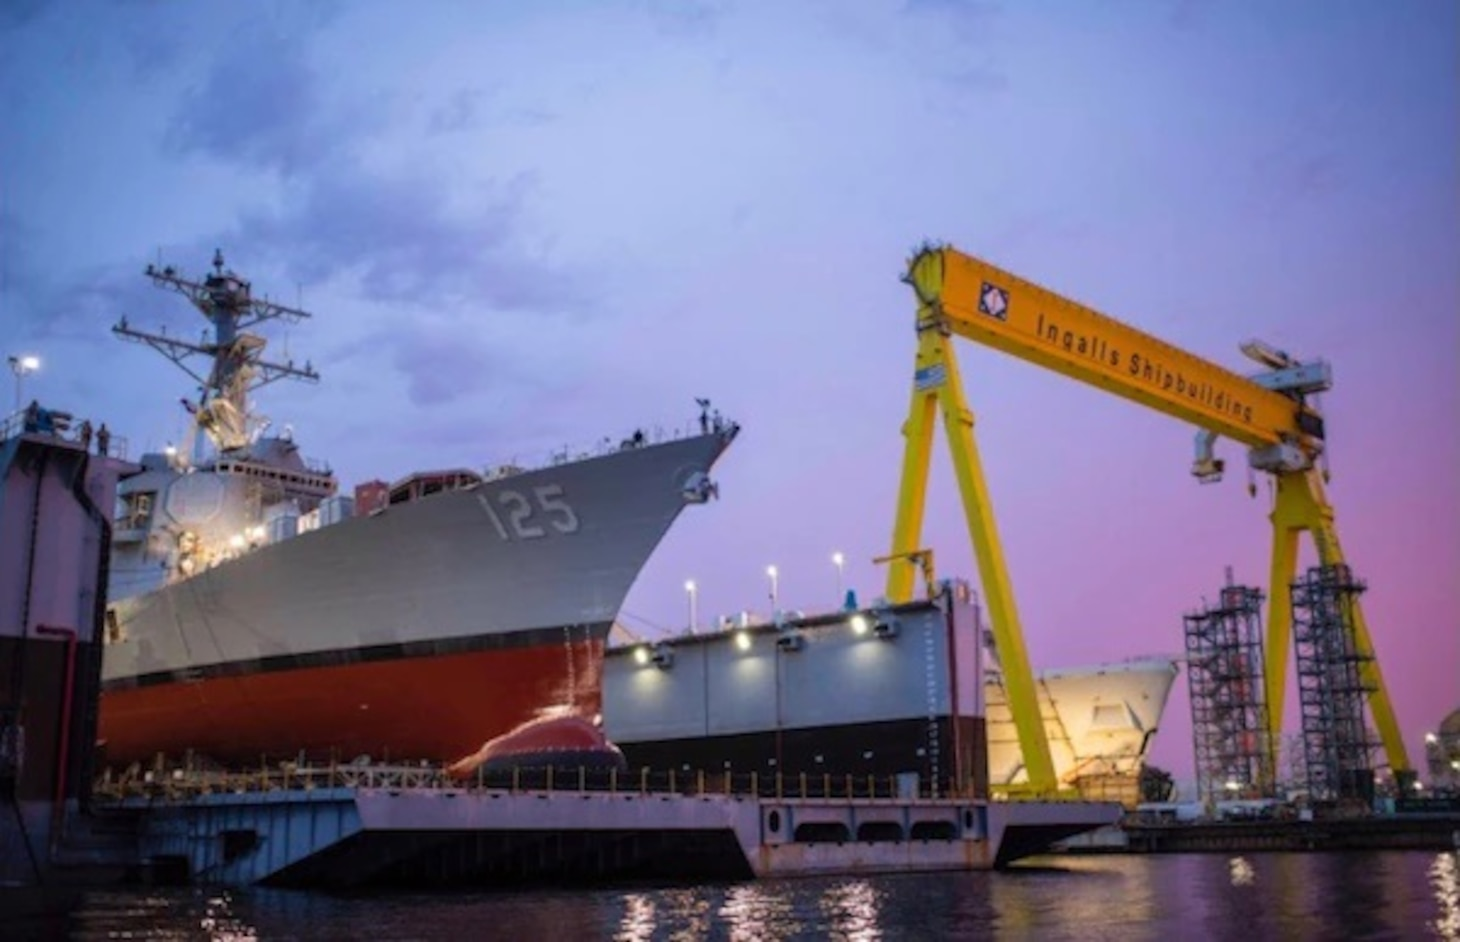 U.S. Navy Launches First Flight III Guided Missile Destroyer, the future Jack H. Lucas